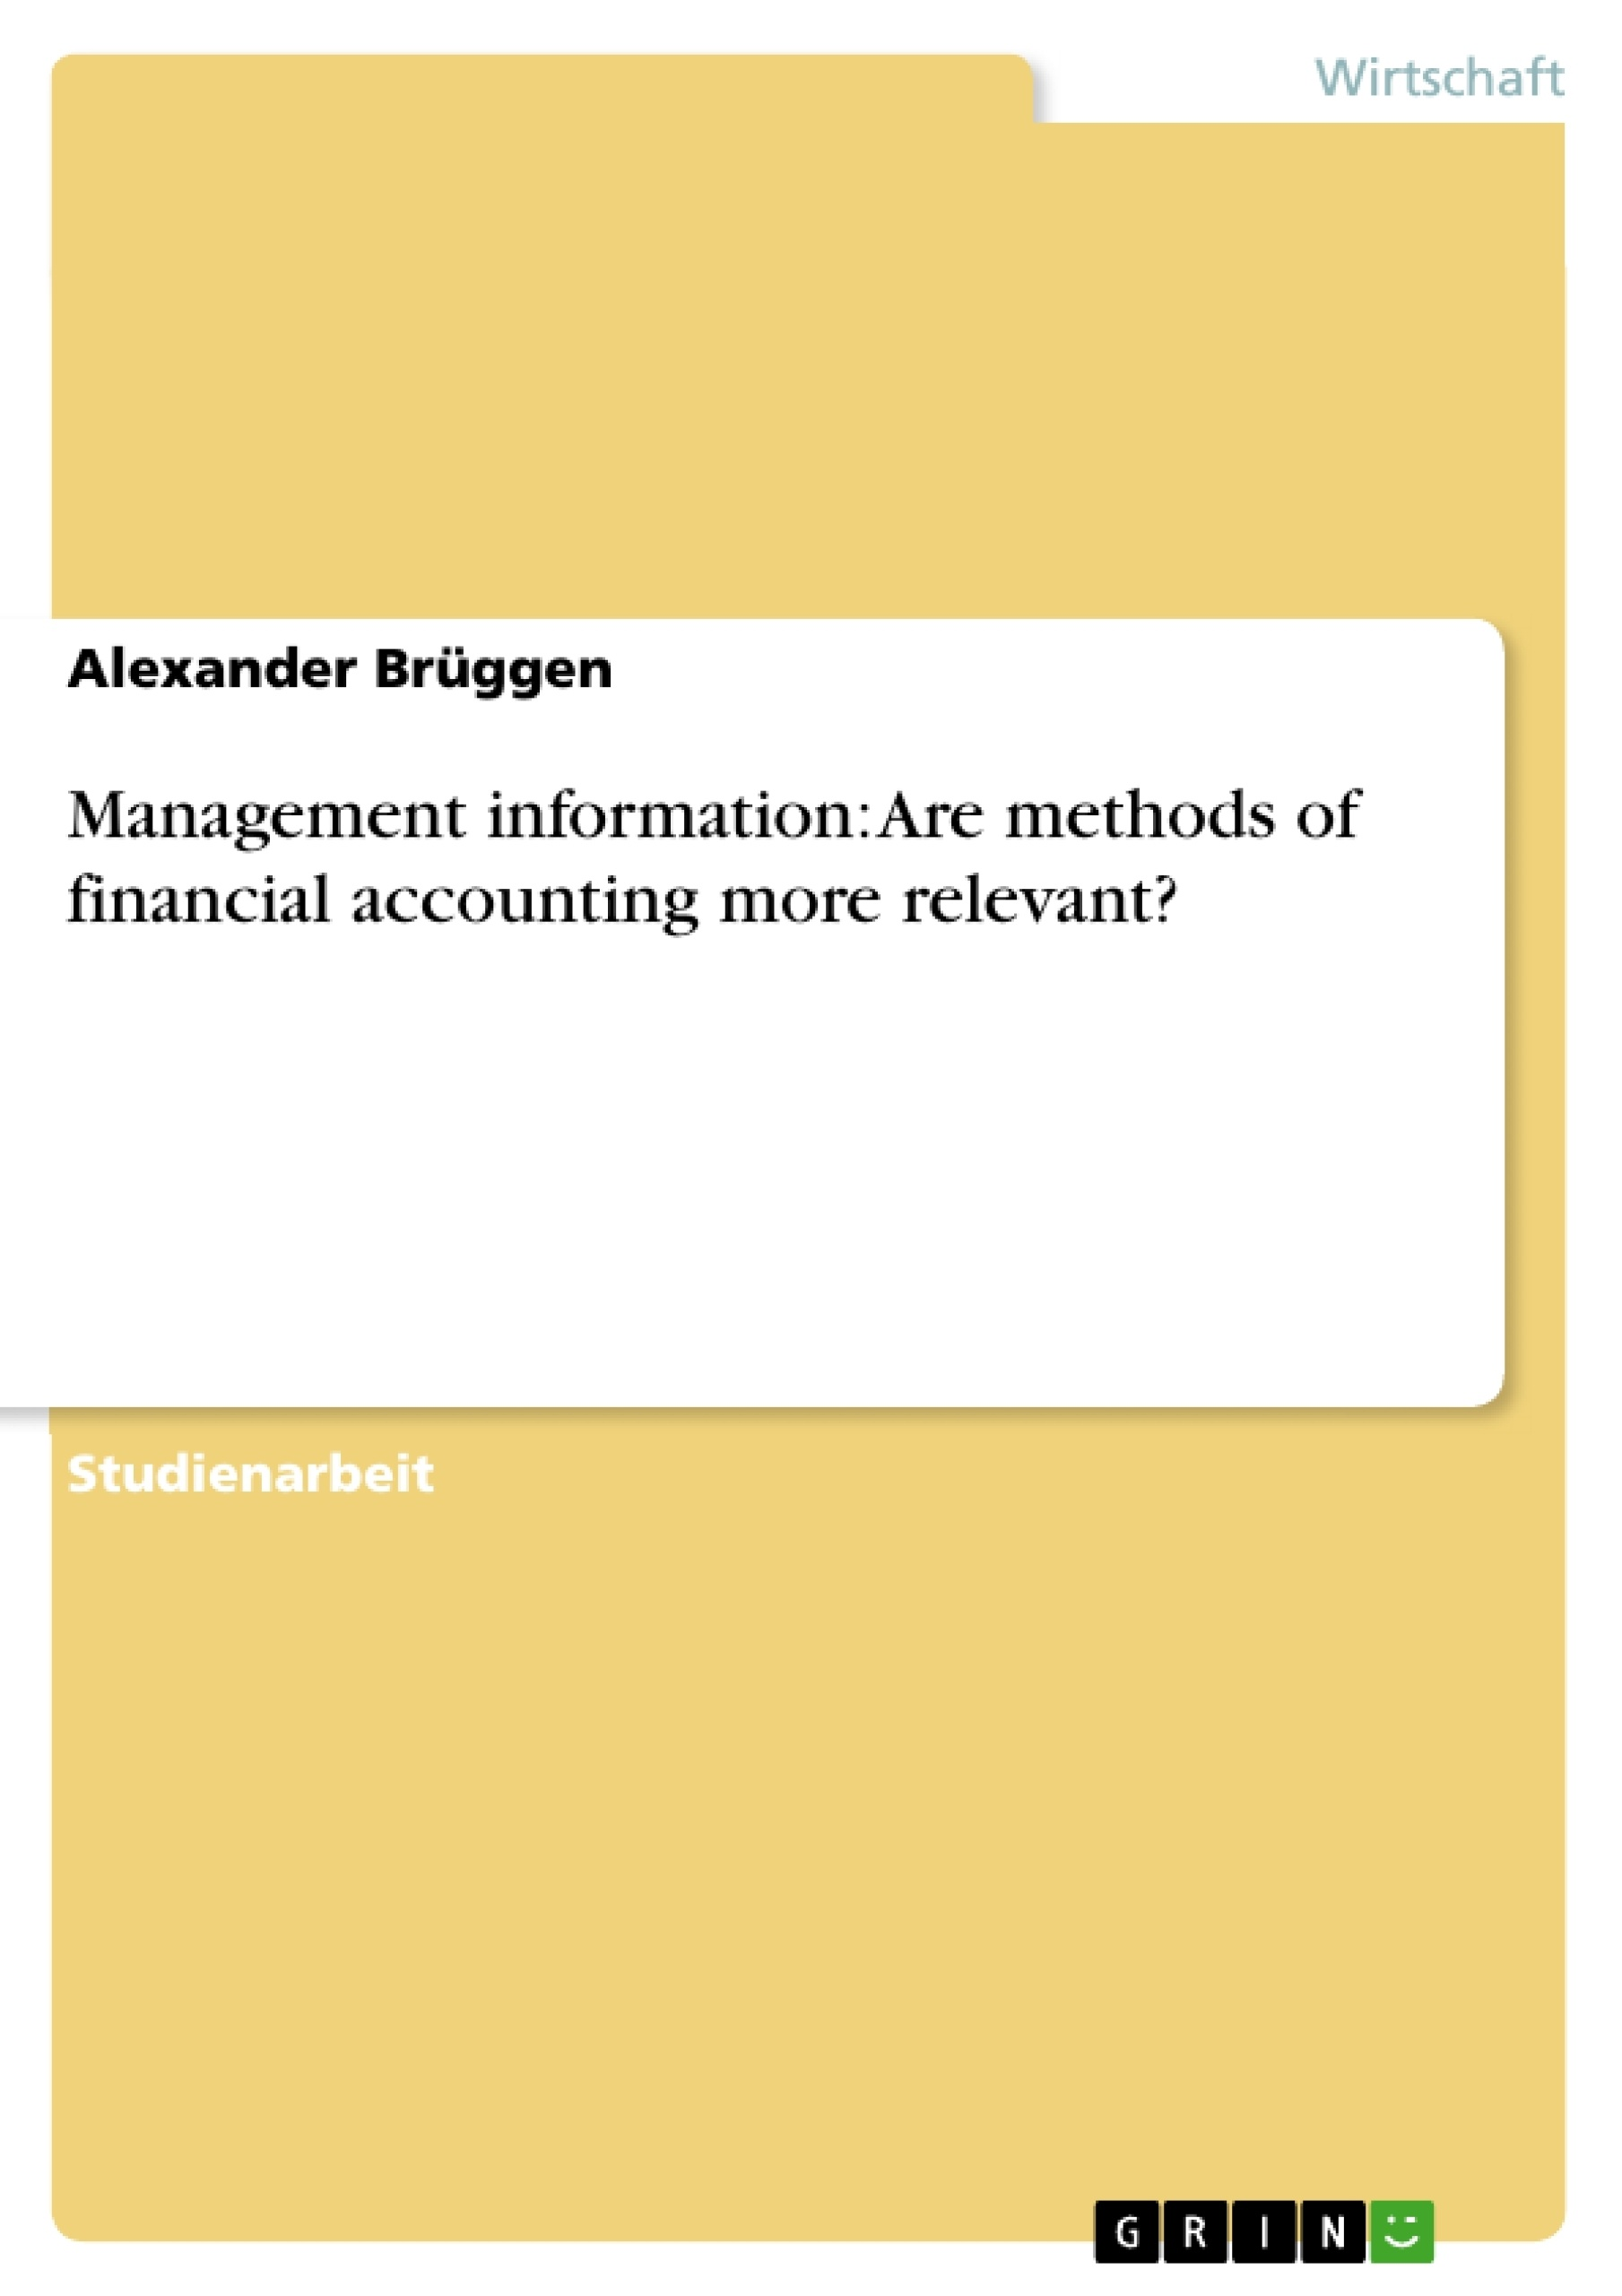 Titel: Management information: Are methods of financial accounting more relevant?